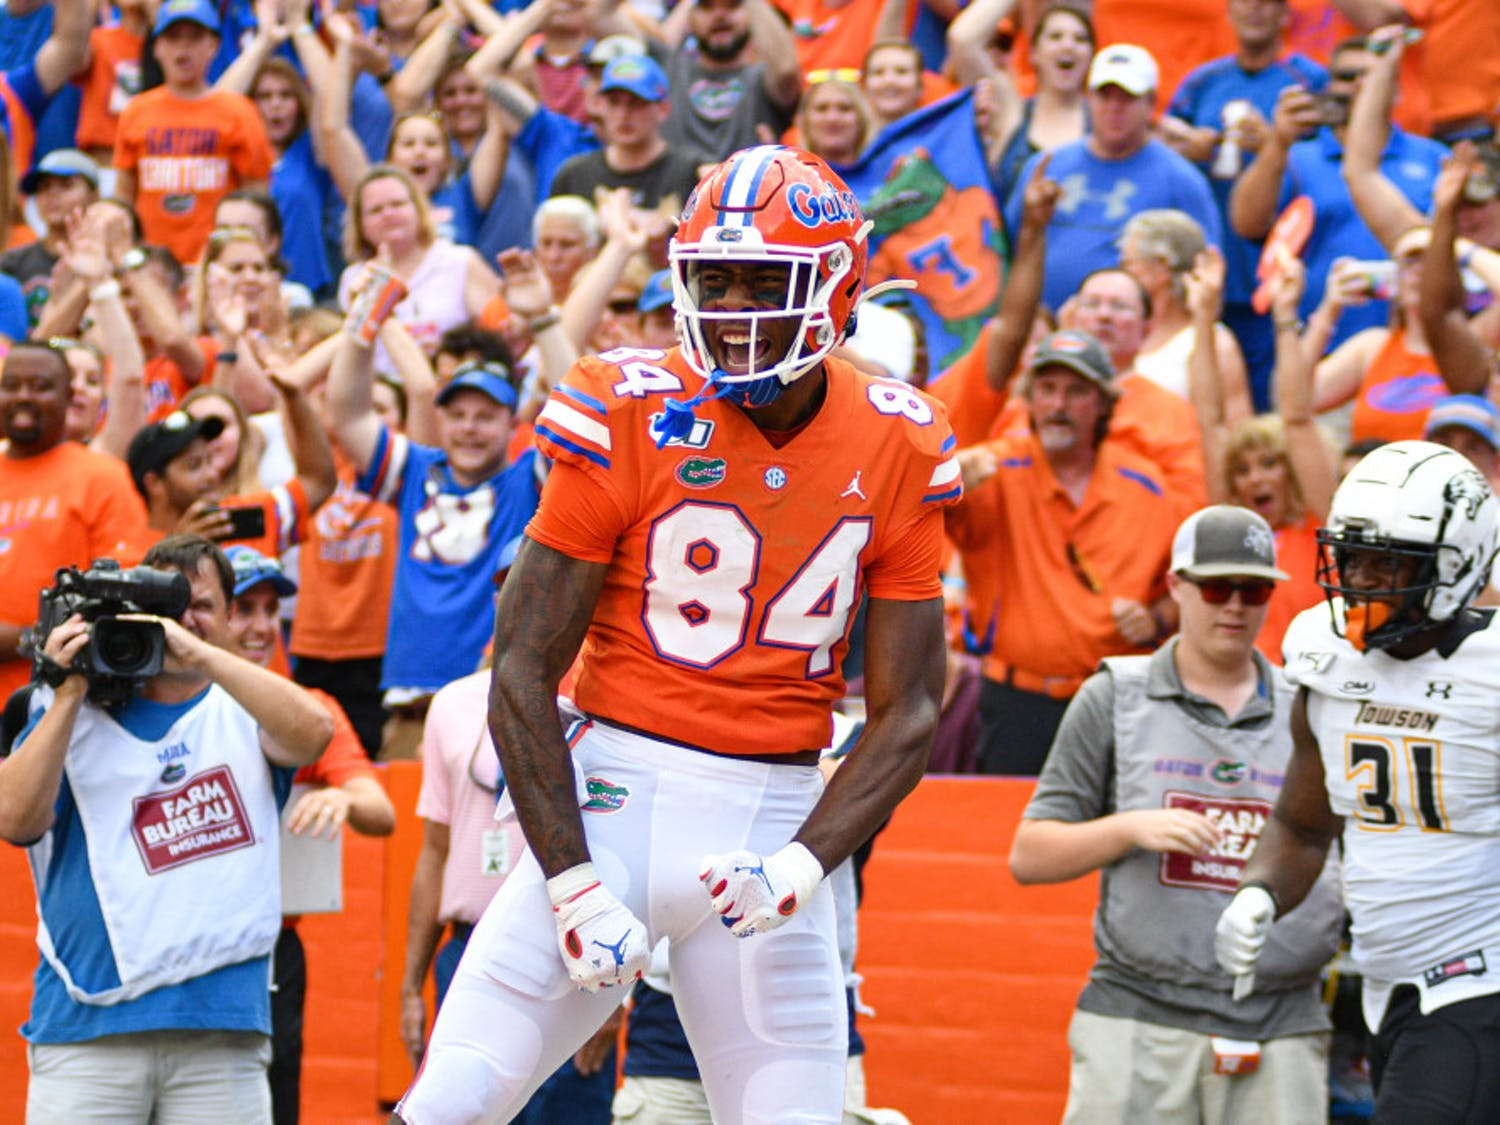 Tight end Kyle Pitts caught two touchdowns as UF defeated Towson 38-0.